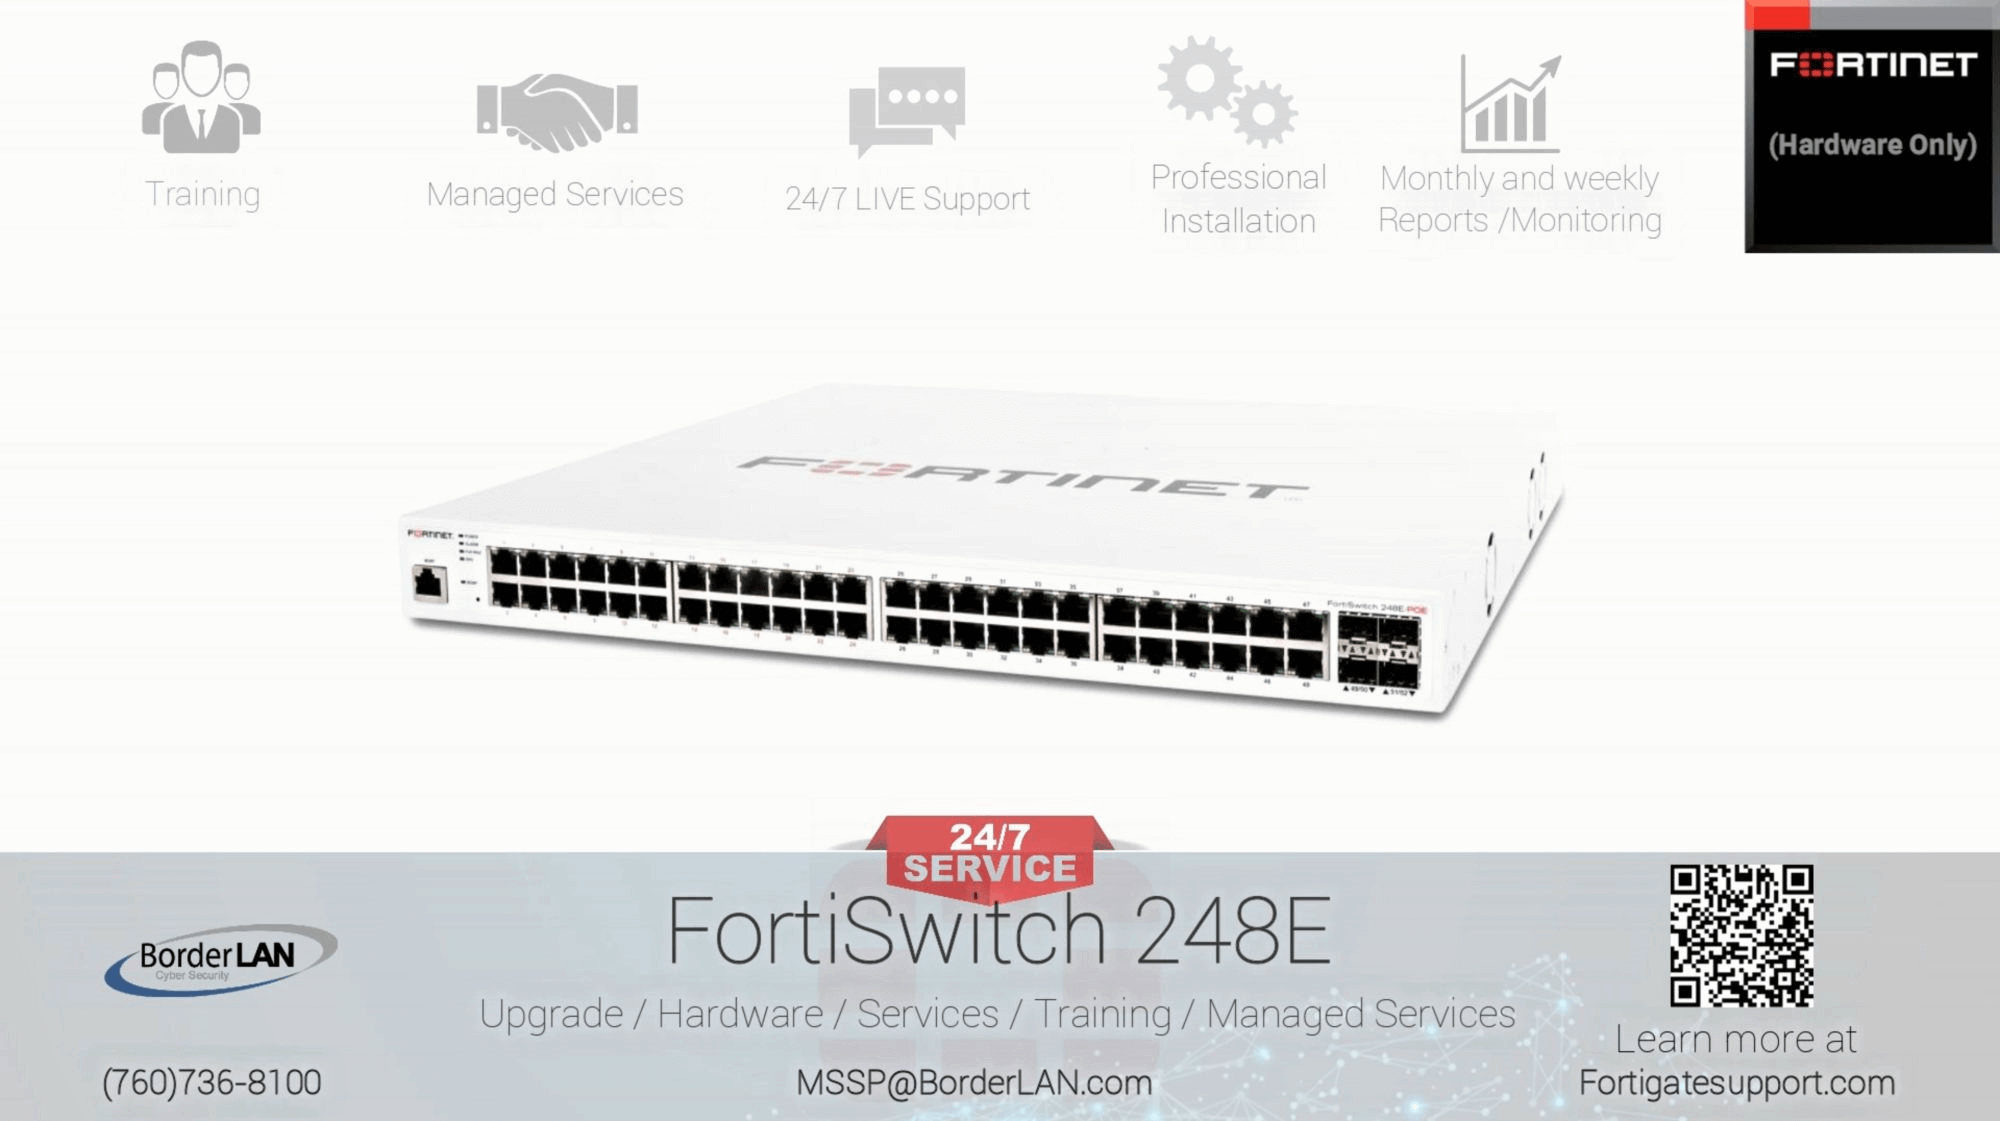 FortiSwitch 248E - POE - (760)736-8100